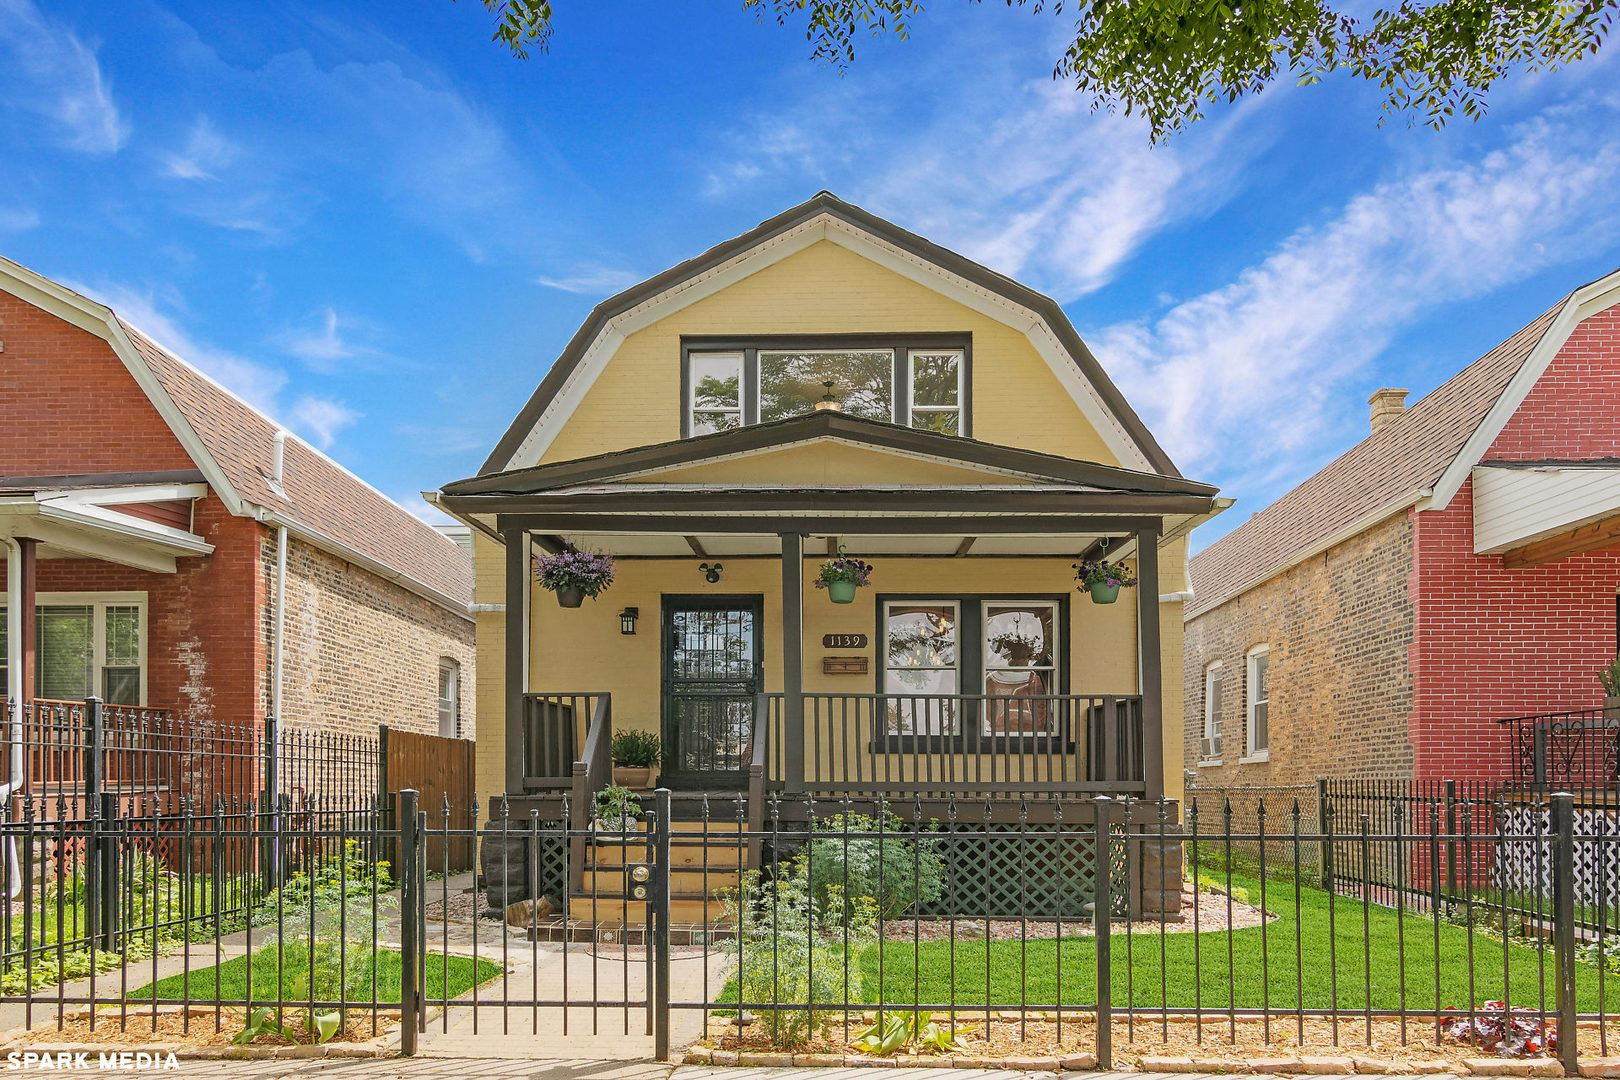 1139 N Kedvale Avenue, Chicago, IL 60651 - #: 10744457